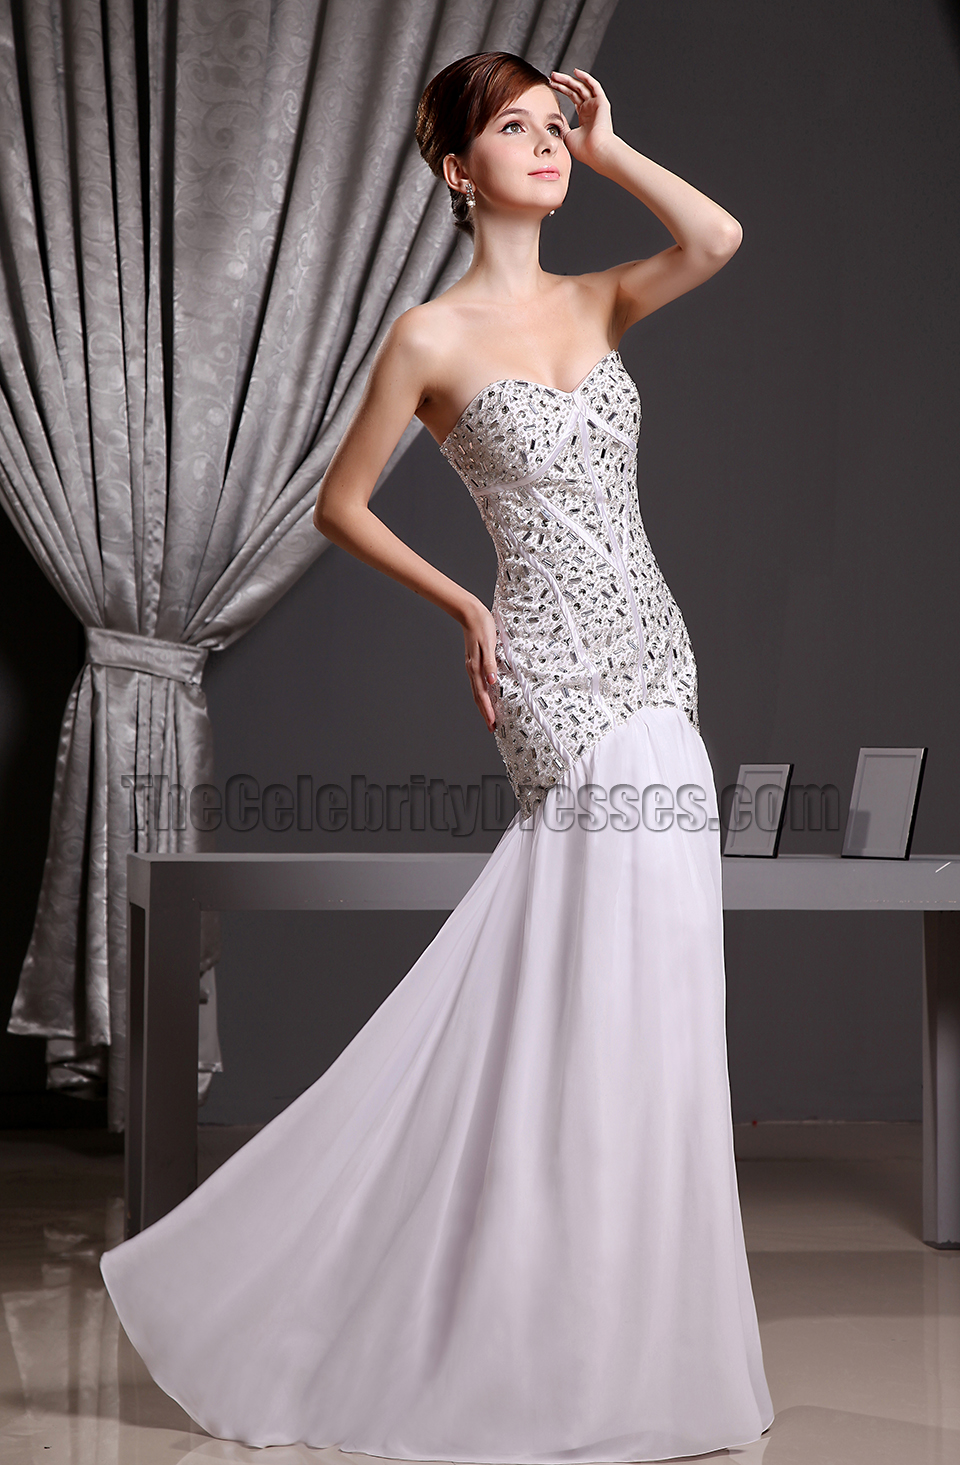 White Beaded Strapless Sweetheart Mermaid Formal Dress Prom Gown Thecelebritydresses